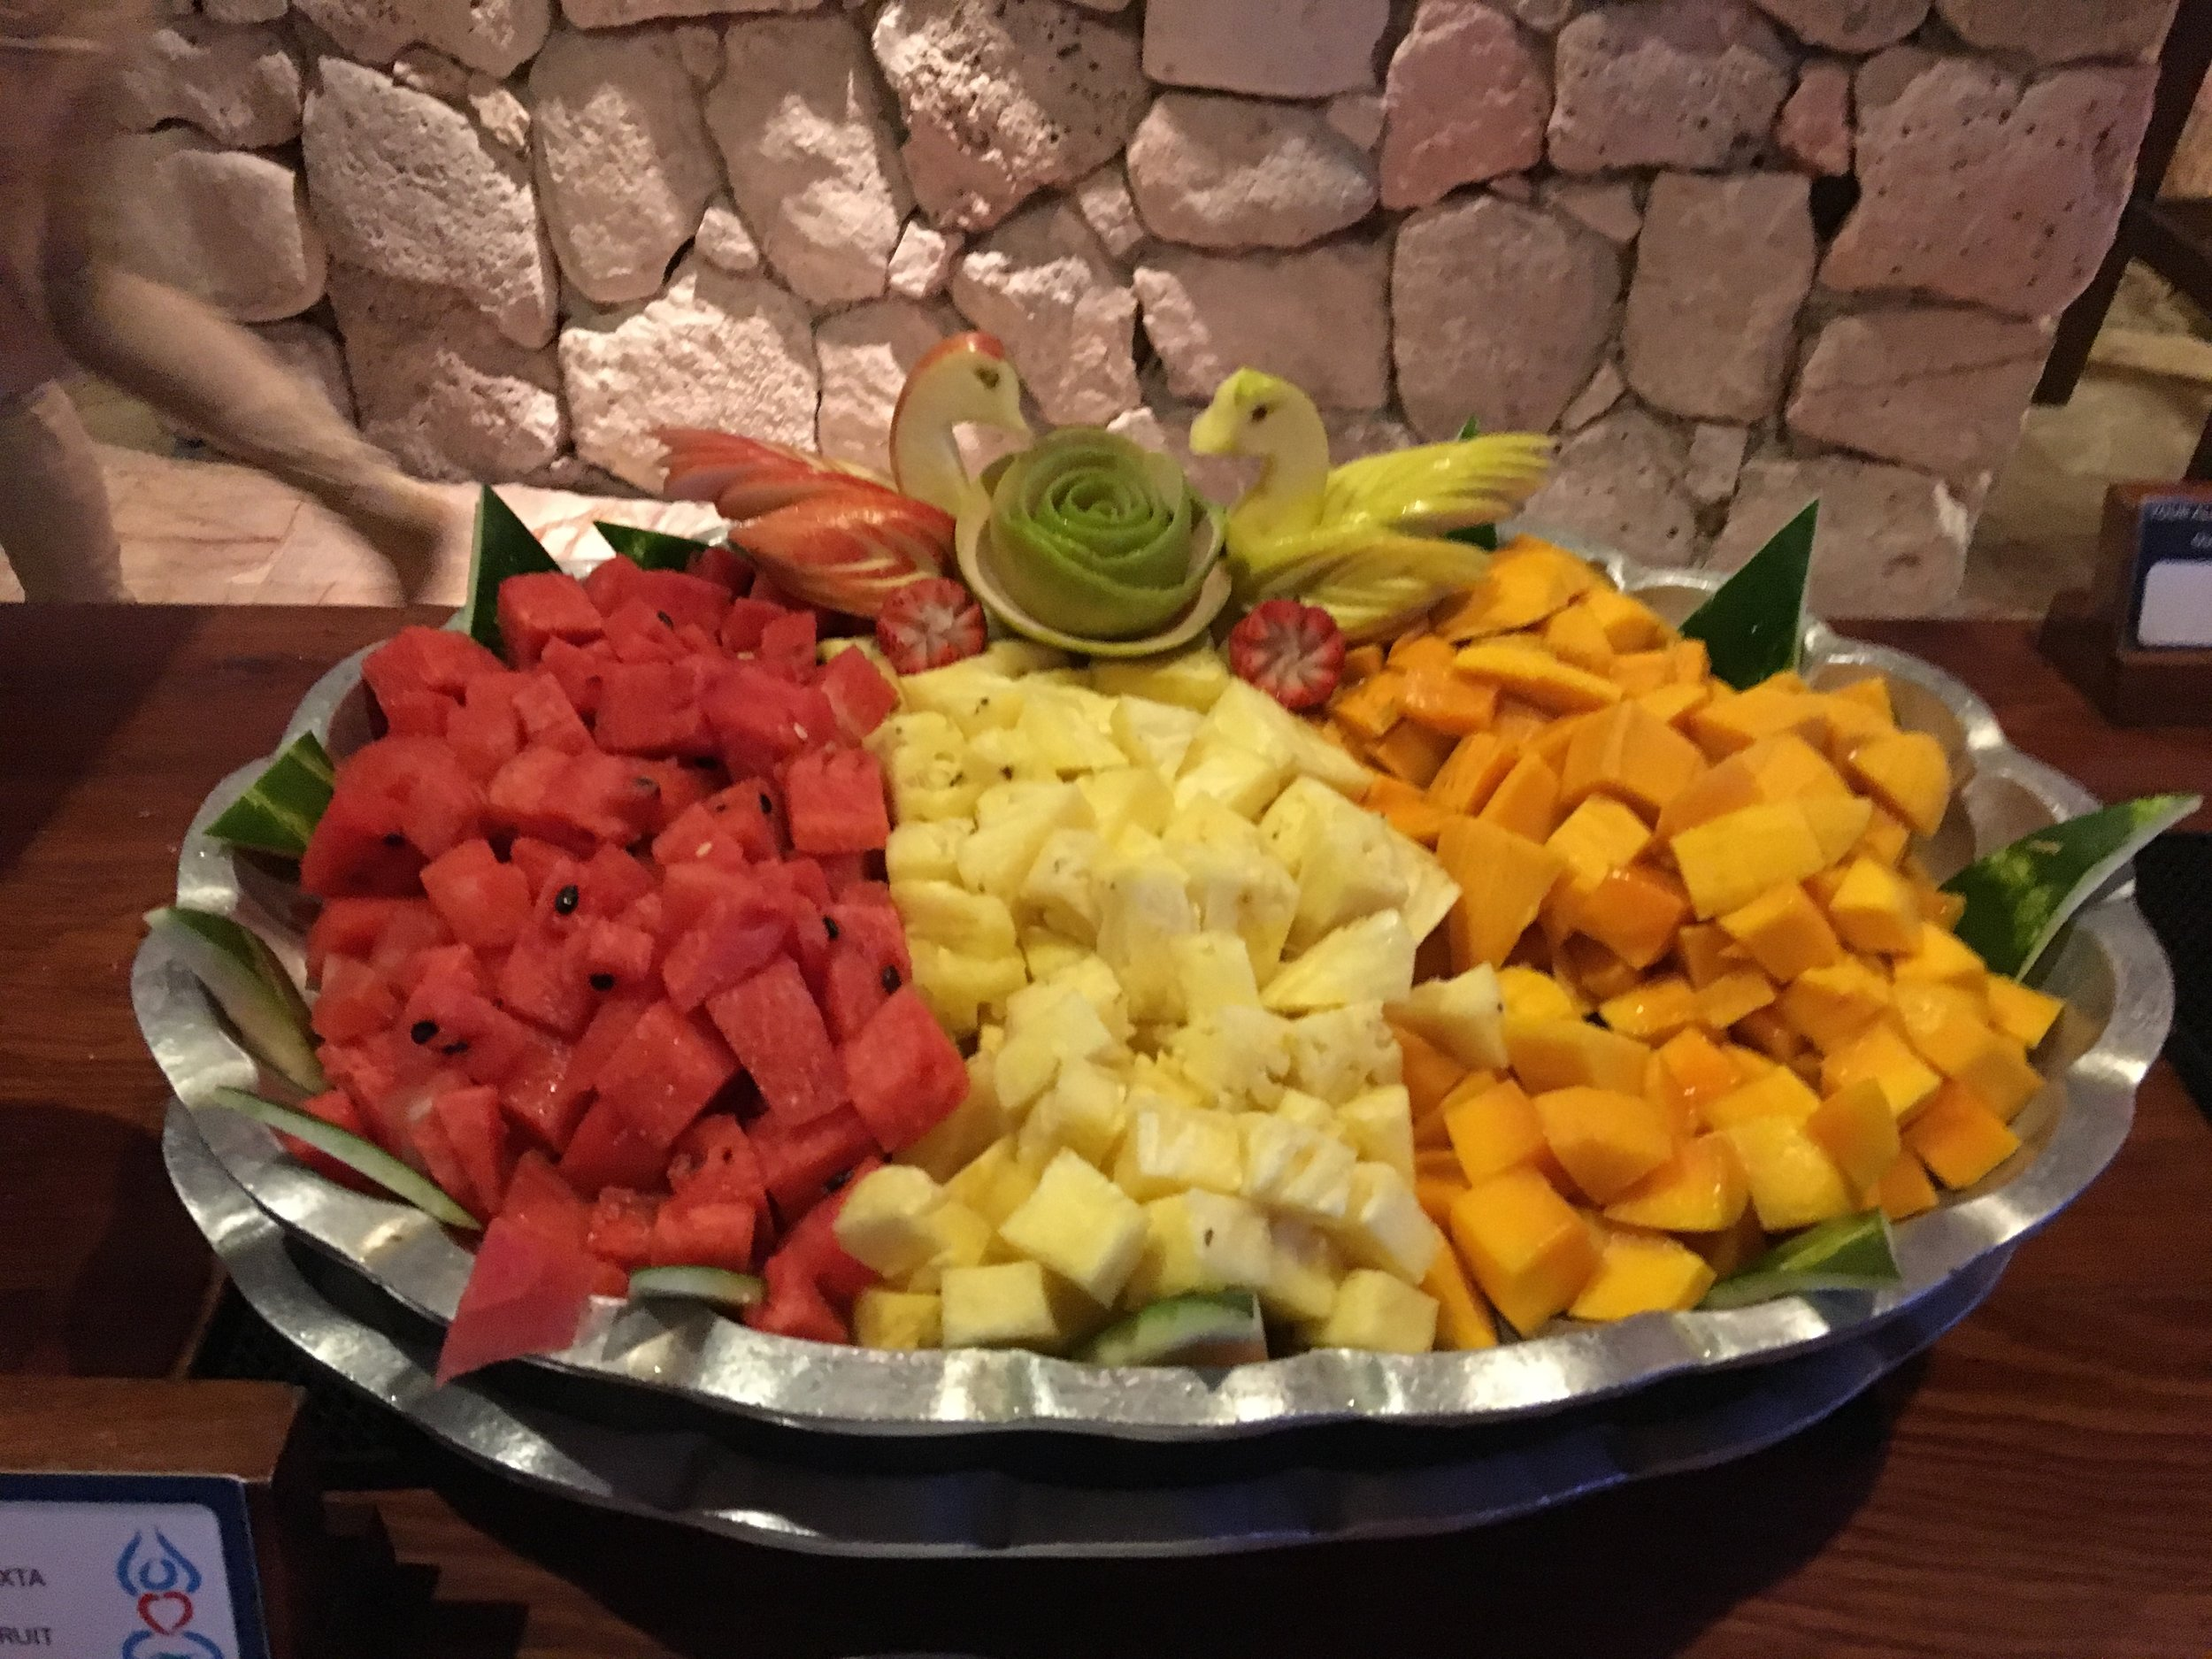 fruits-tulum 2016.JPG